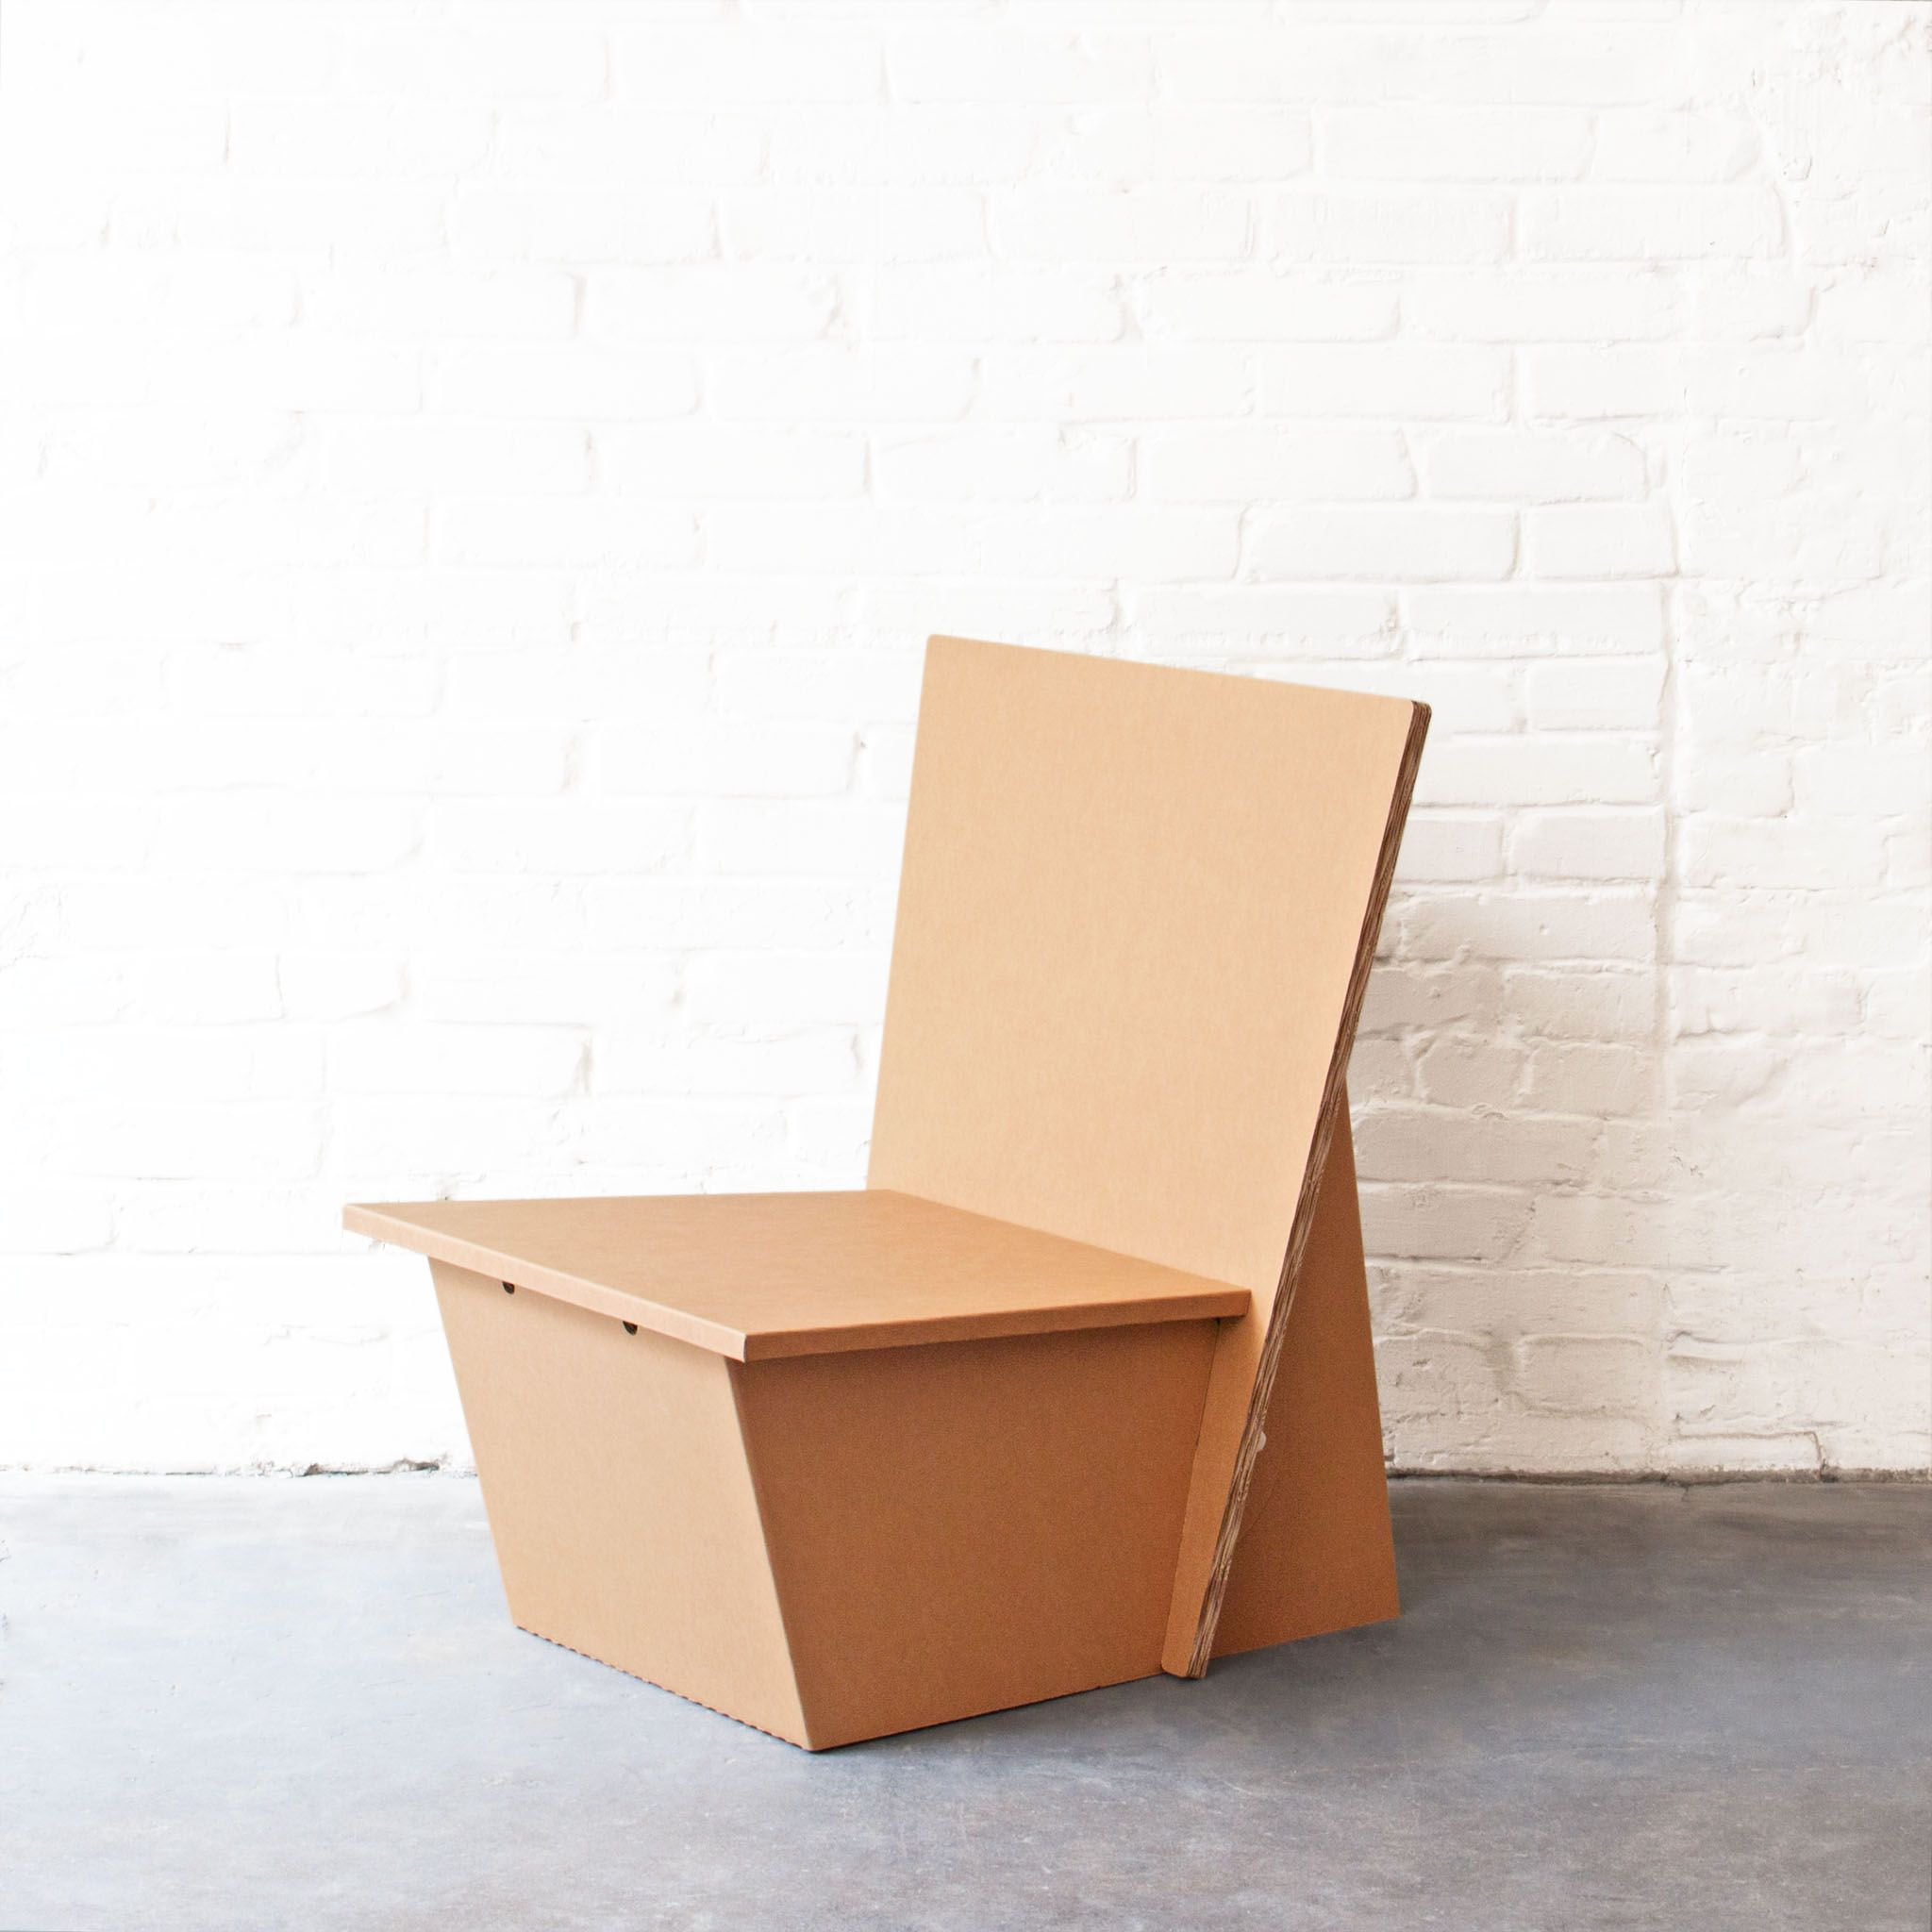 Pappe Kaufen Sessel Bertl And Babette Cardboard Furnitures Pappe